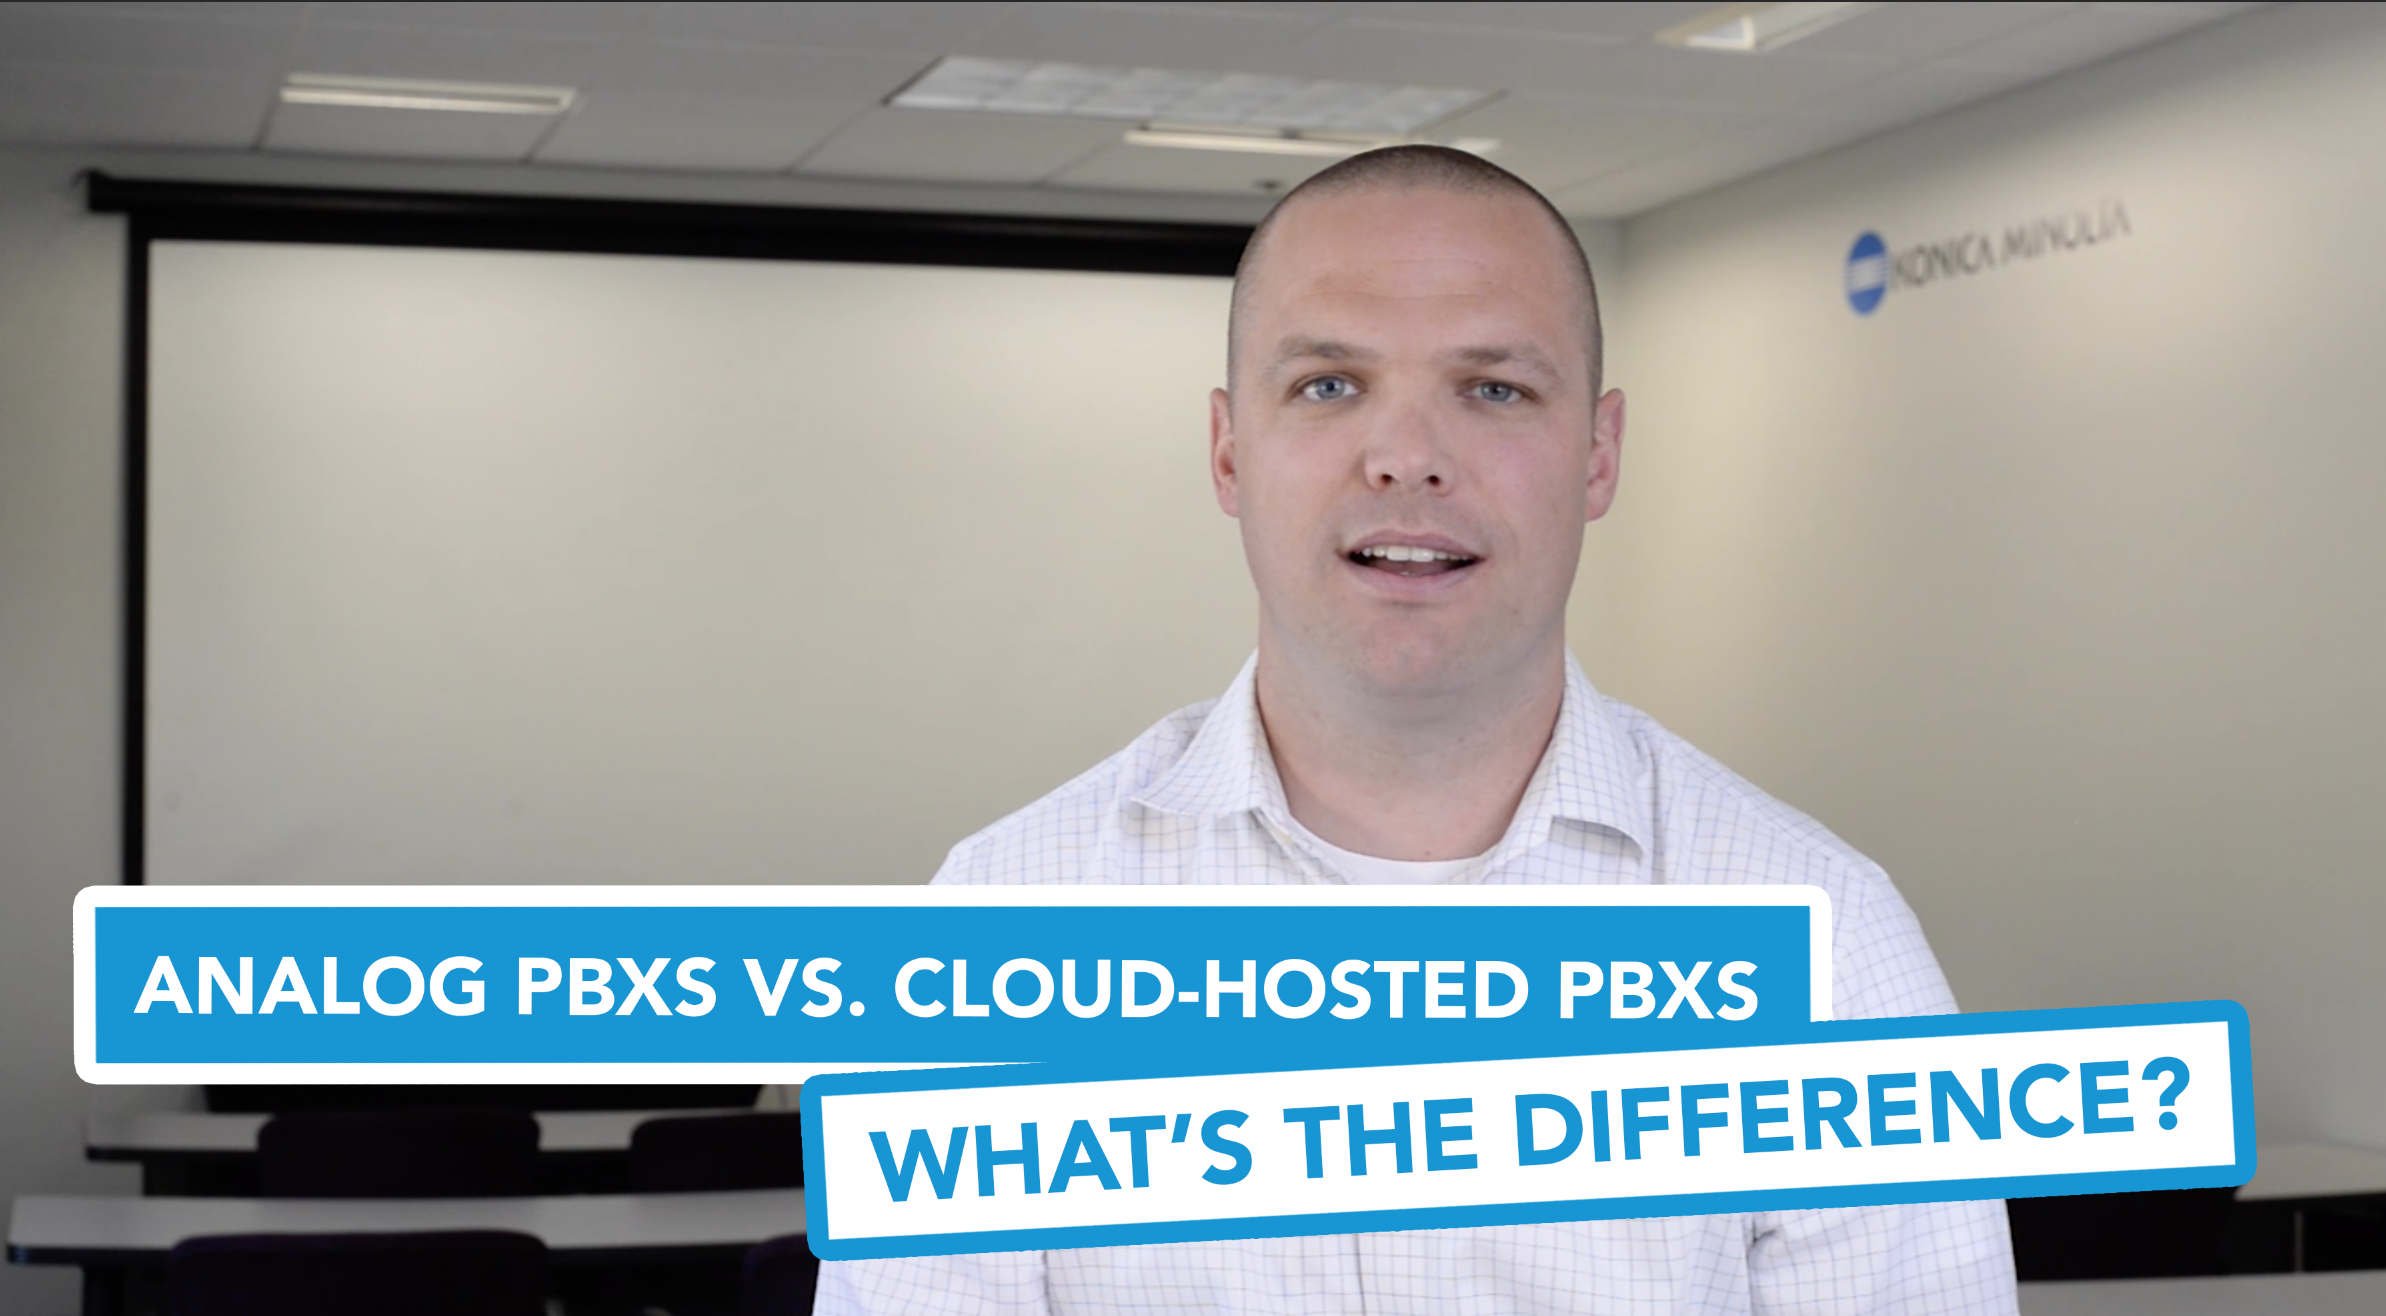 Analog PBXs vs. Cloud-Hosted PBXs: What's the difference?